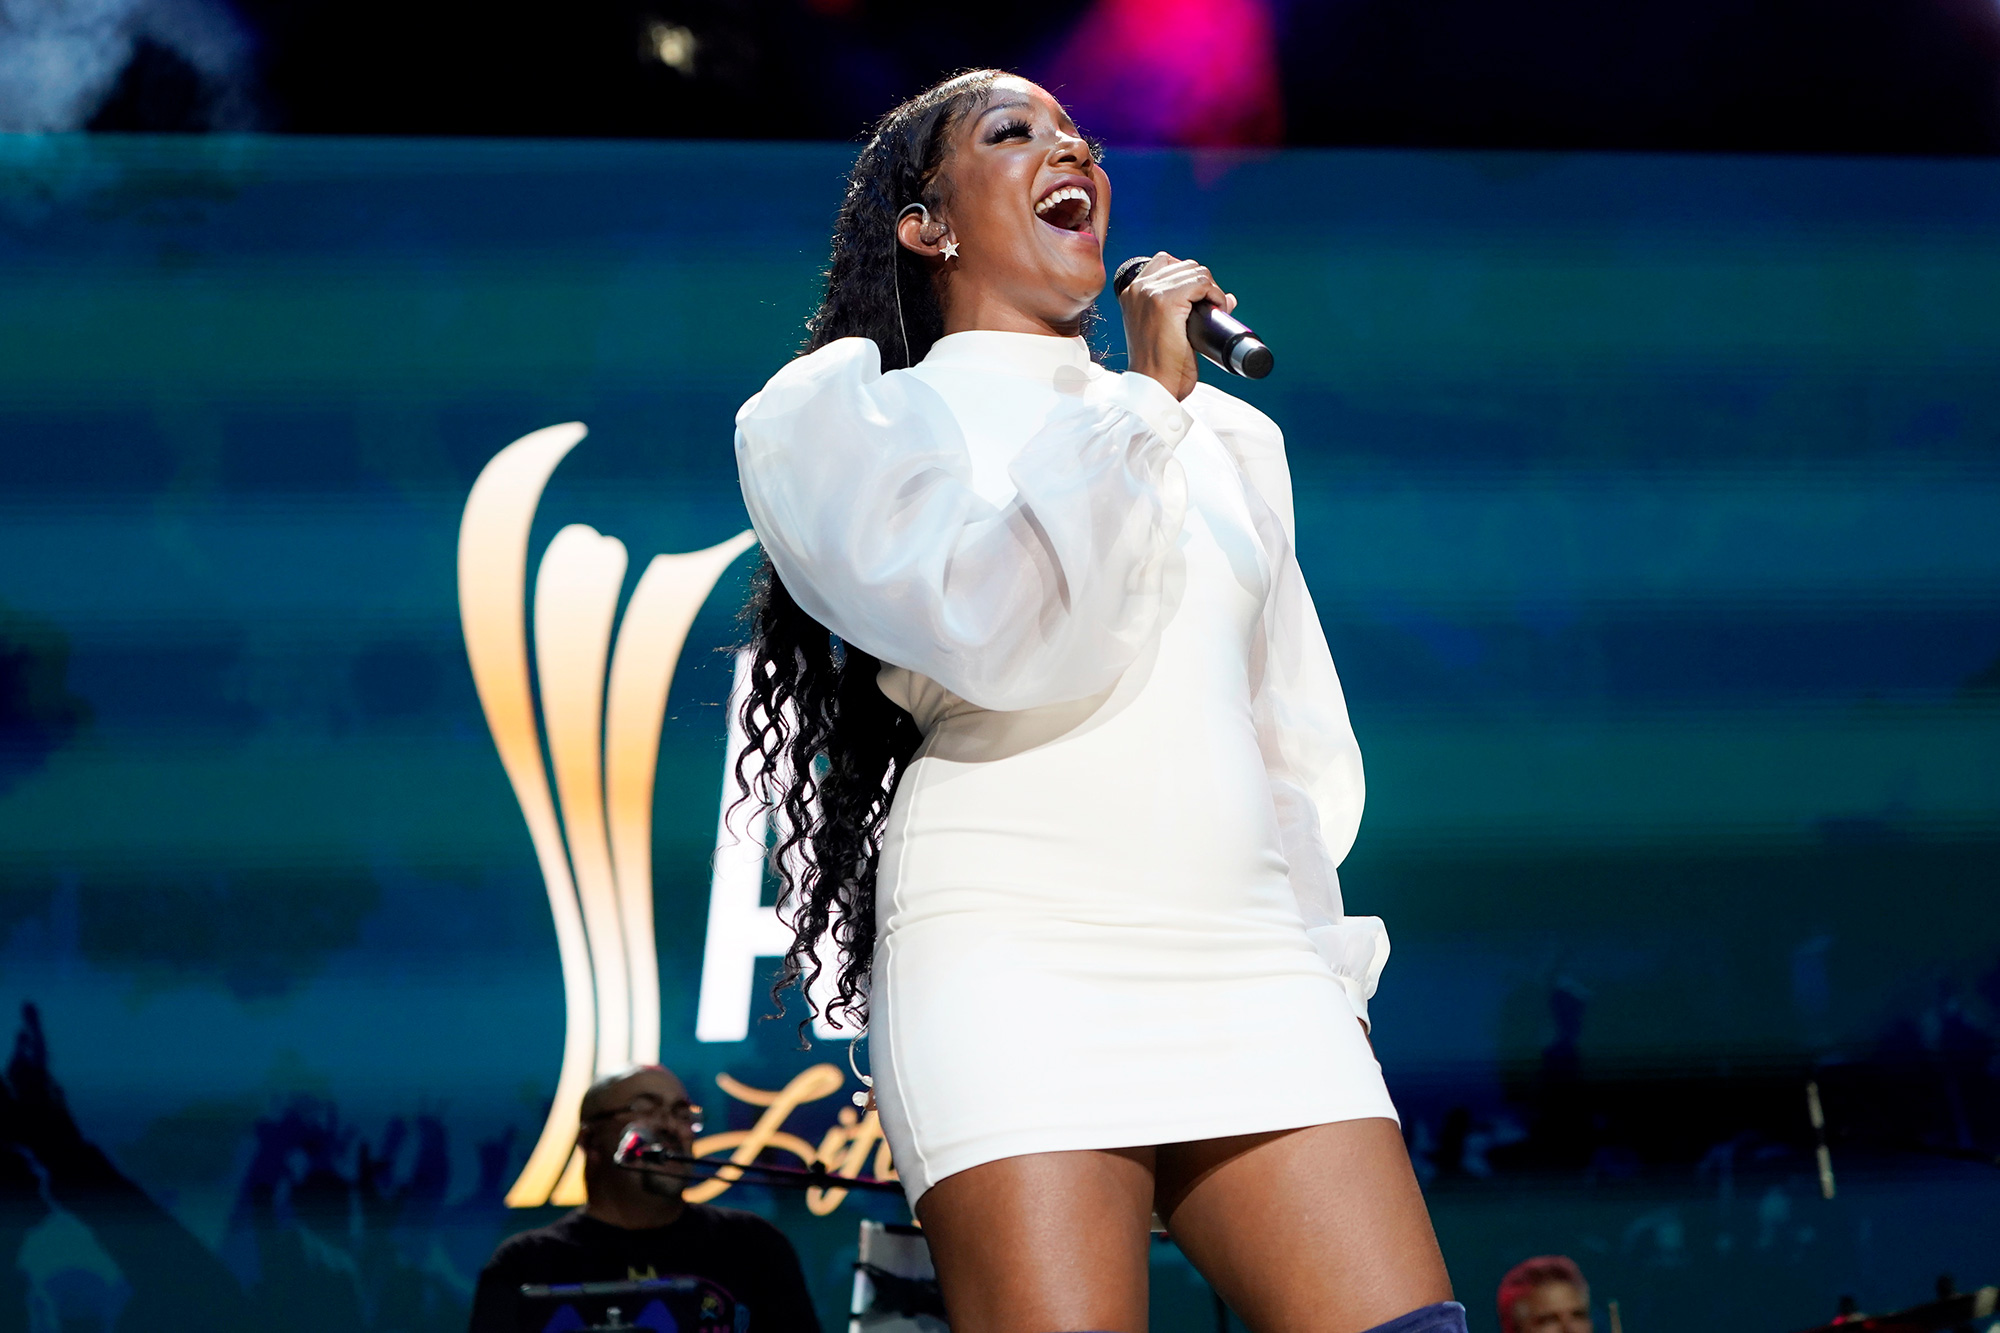 Mickey Guyton performs onstage at the 2021 ACM Party For A Cause at Ascend Amphitheater on August 24, 2021 in Nashville, Tennessee